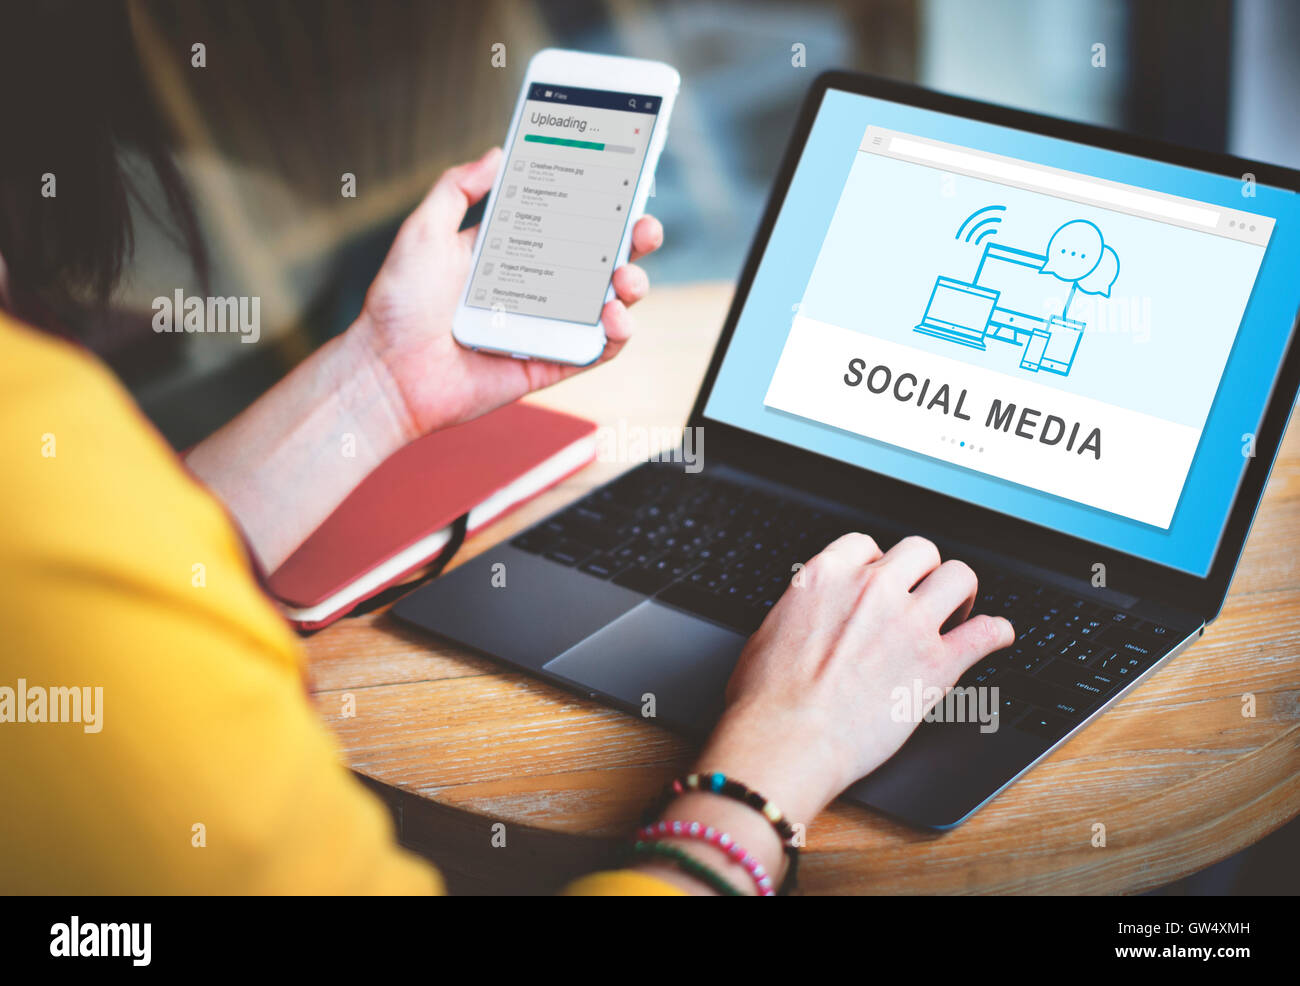 Social Media Devices Internet Concept - Stock Image